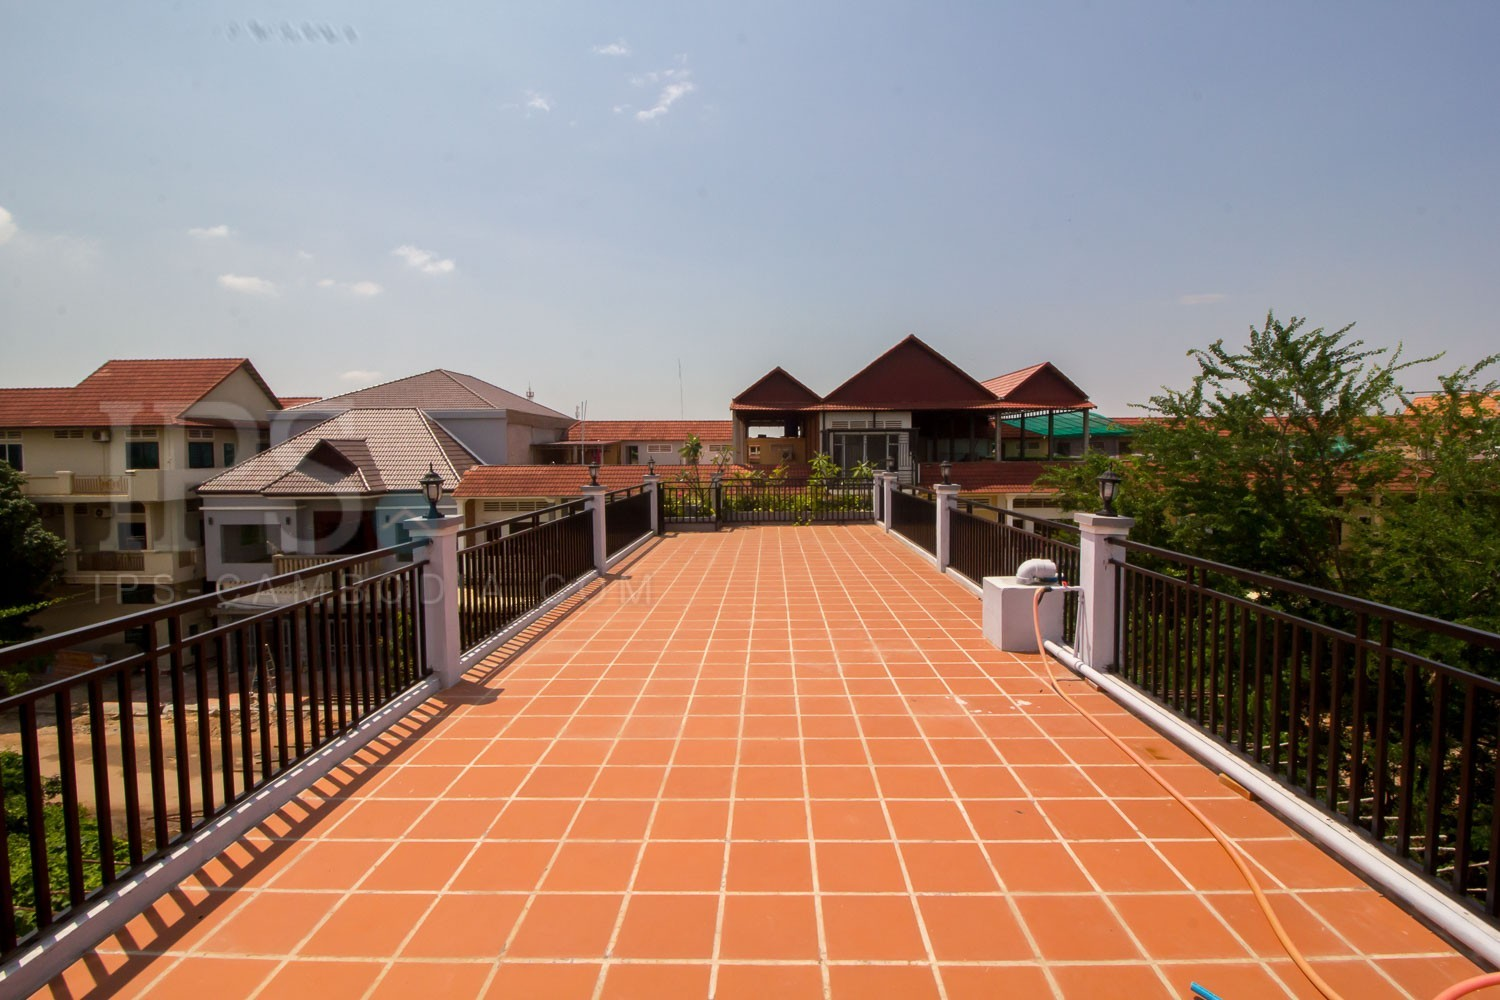 4 Bedroom Townhouse For Rent - Chreav, Siem Reap